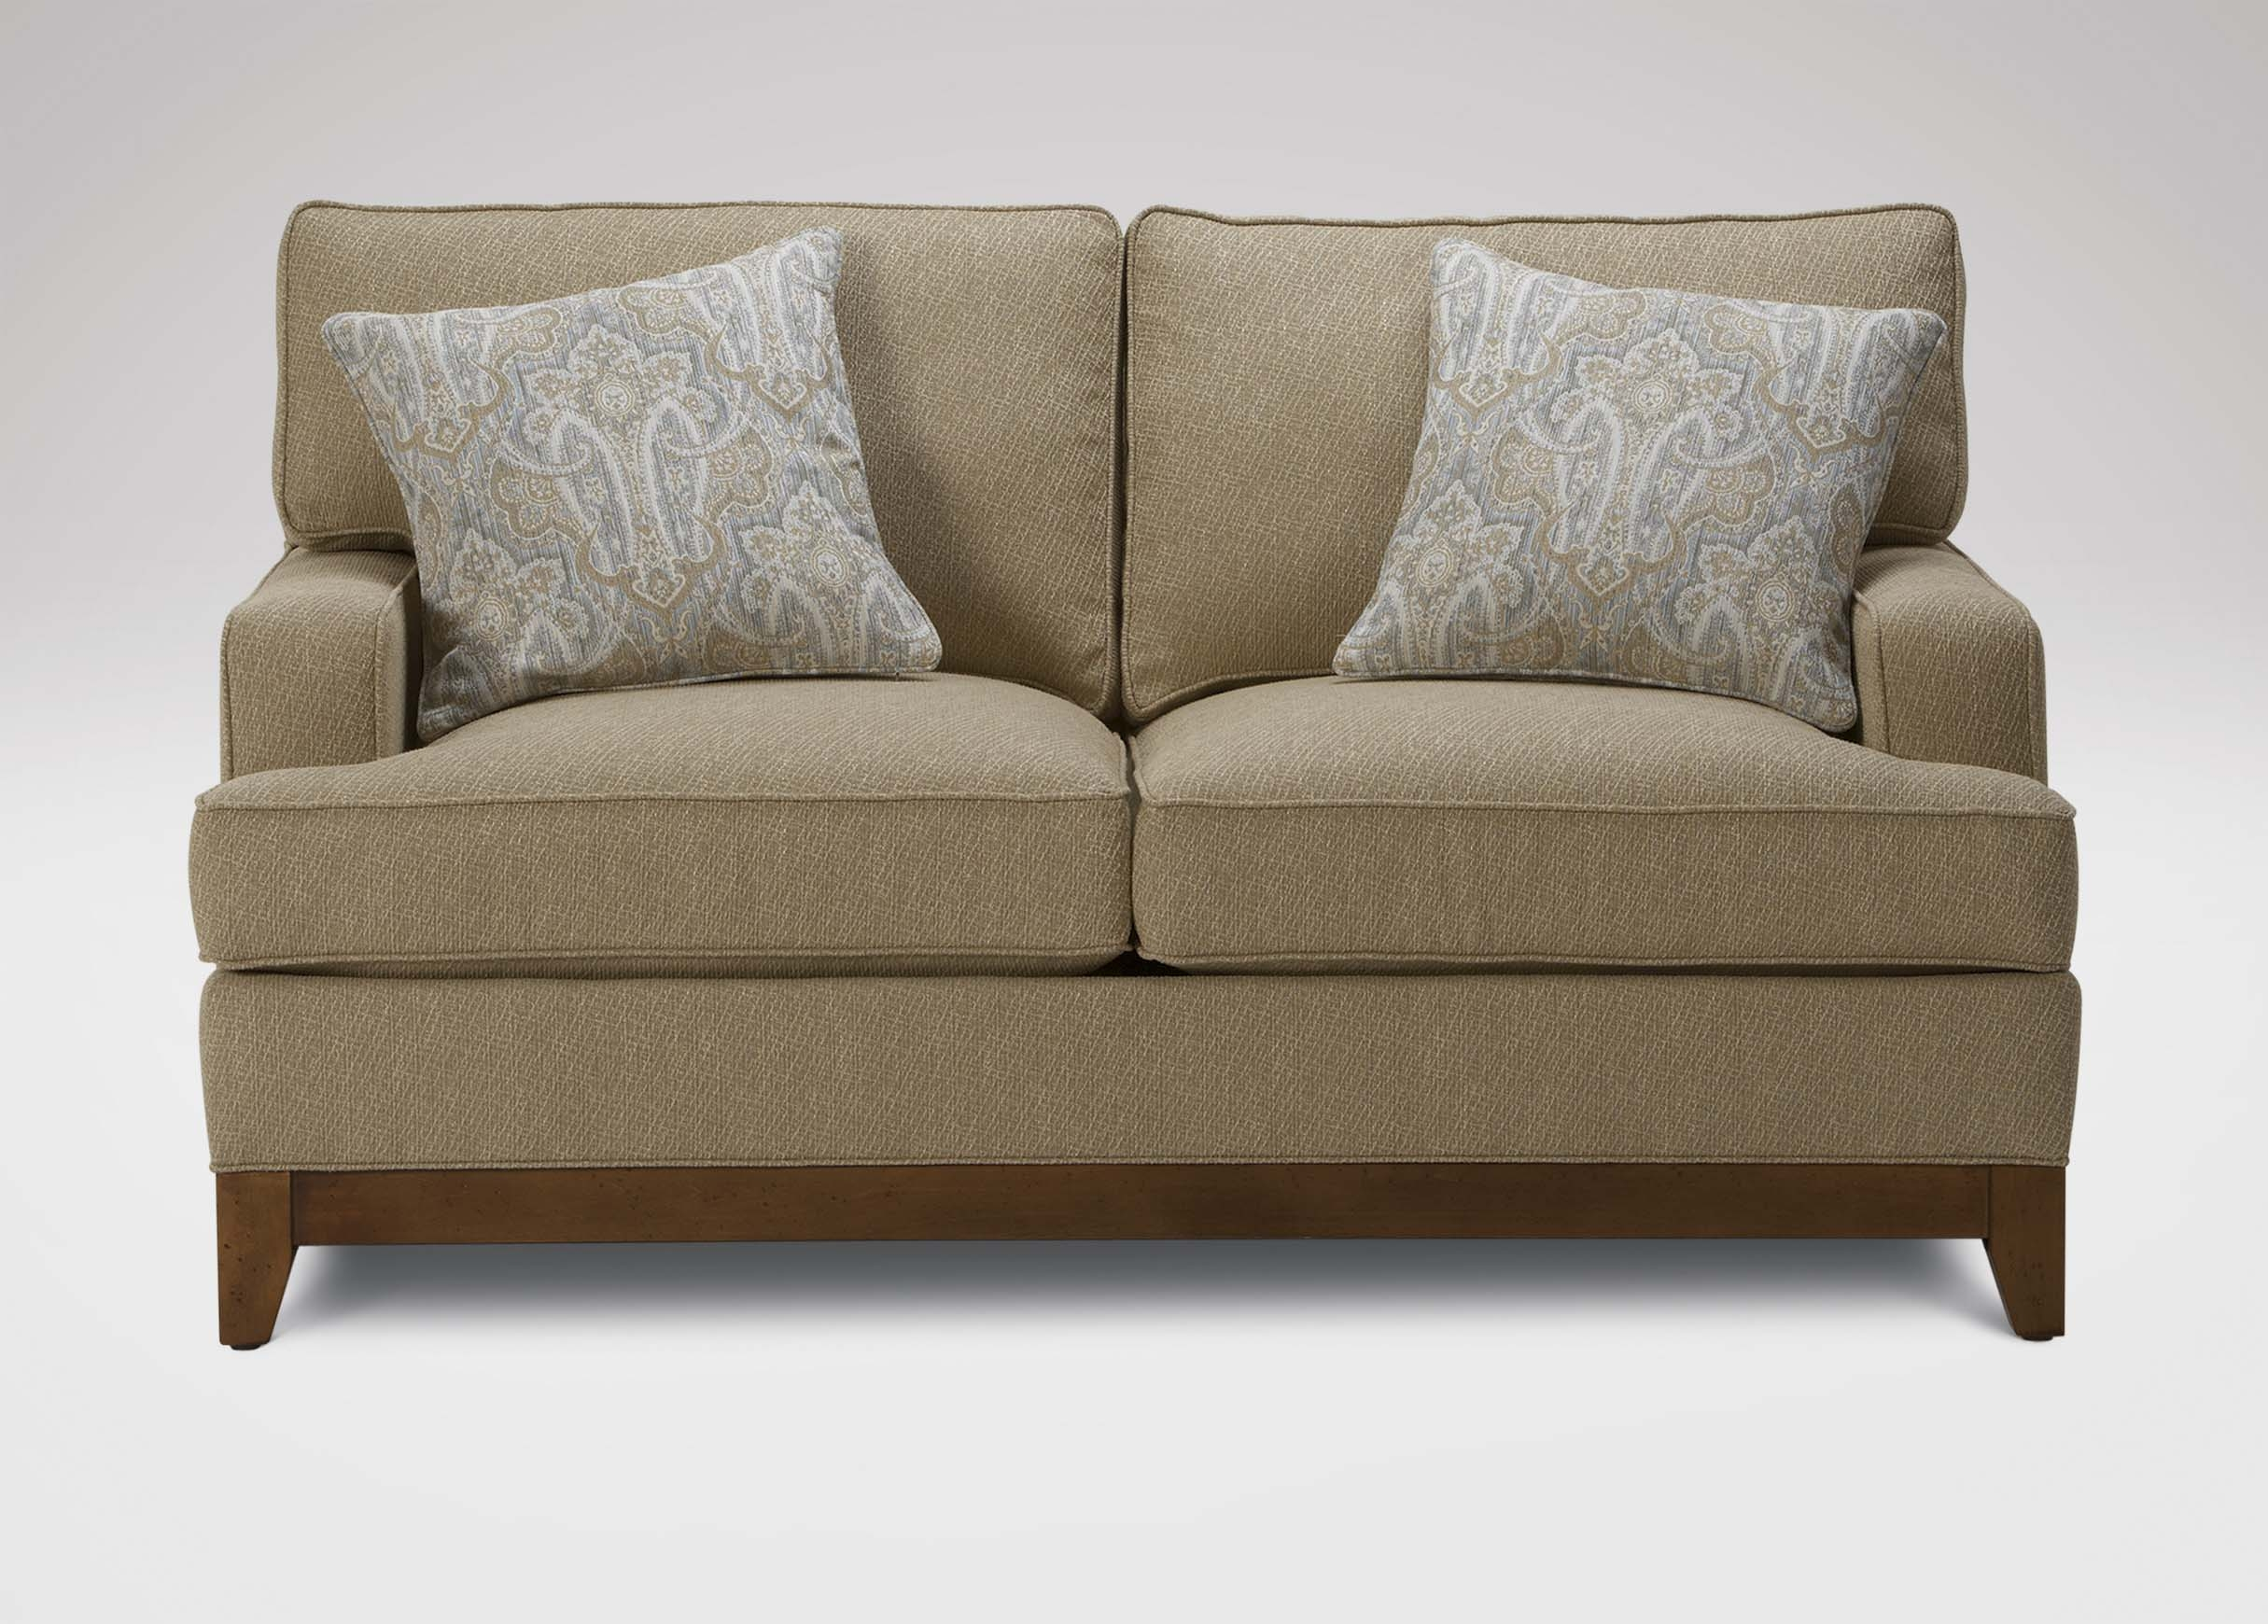 Arcata Sofa Sofas Loveseats Pertaining To Ethan Allen Sofas And Chairs (Image 1 of 15)